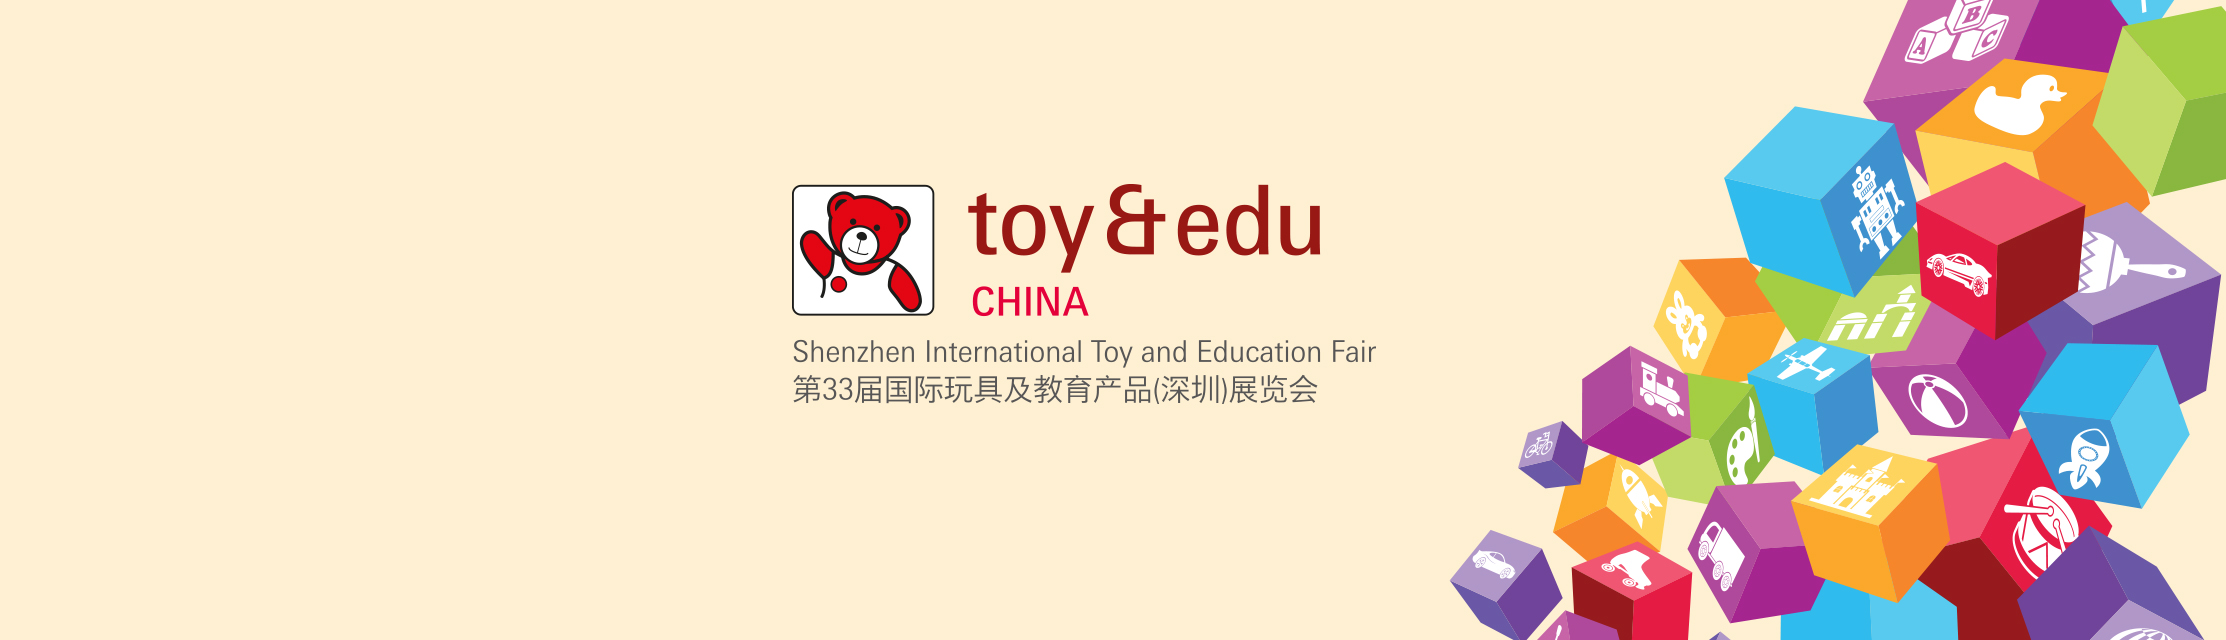 Guangzhou International Toy & Hobby Fair